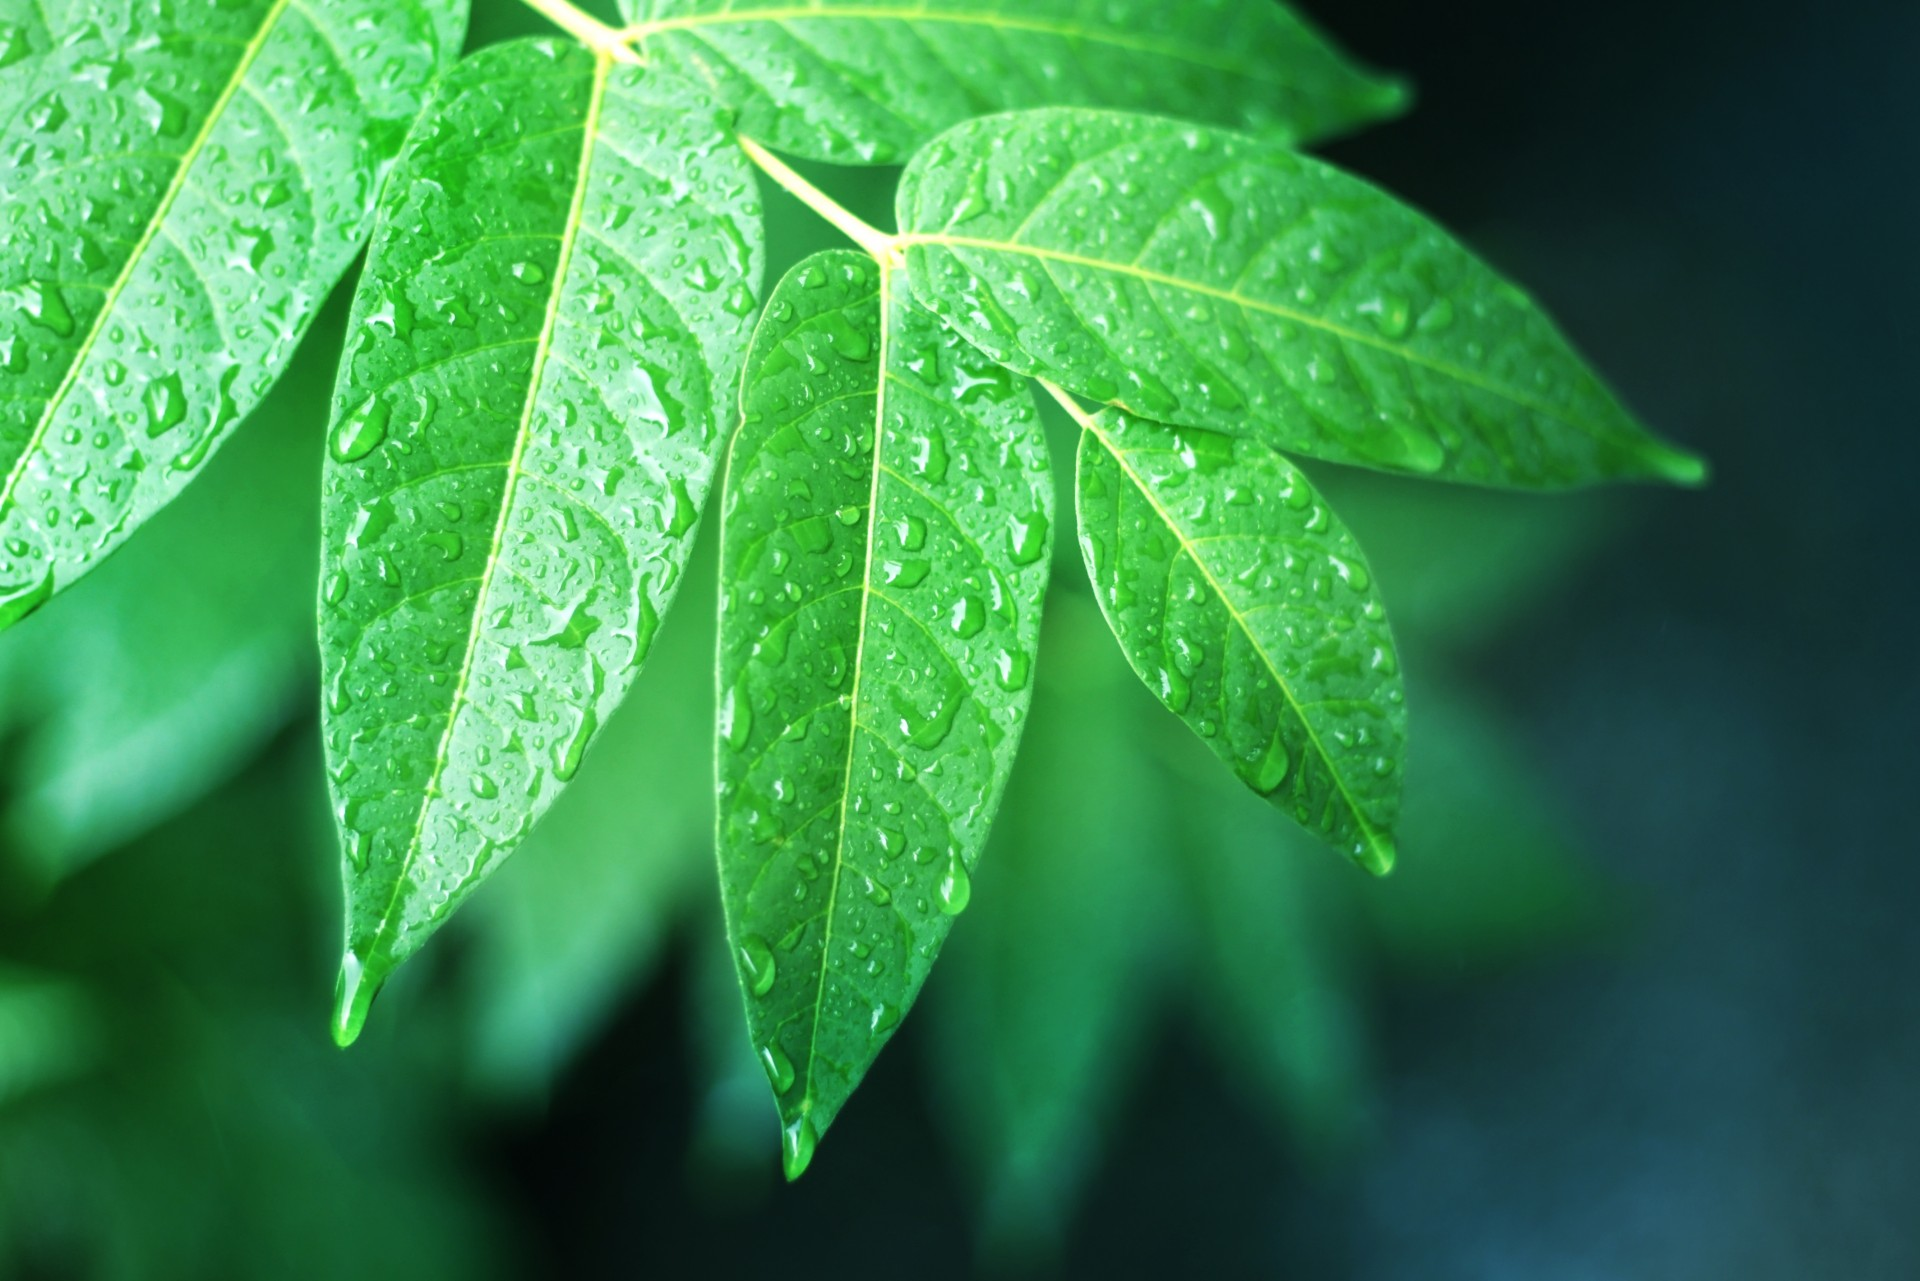 Wet Leaves Free Stock Photo - Public Domain Pictures